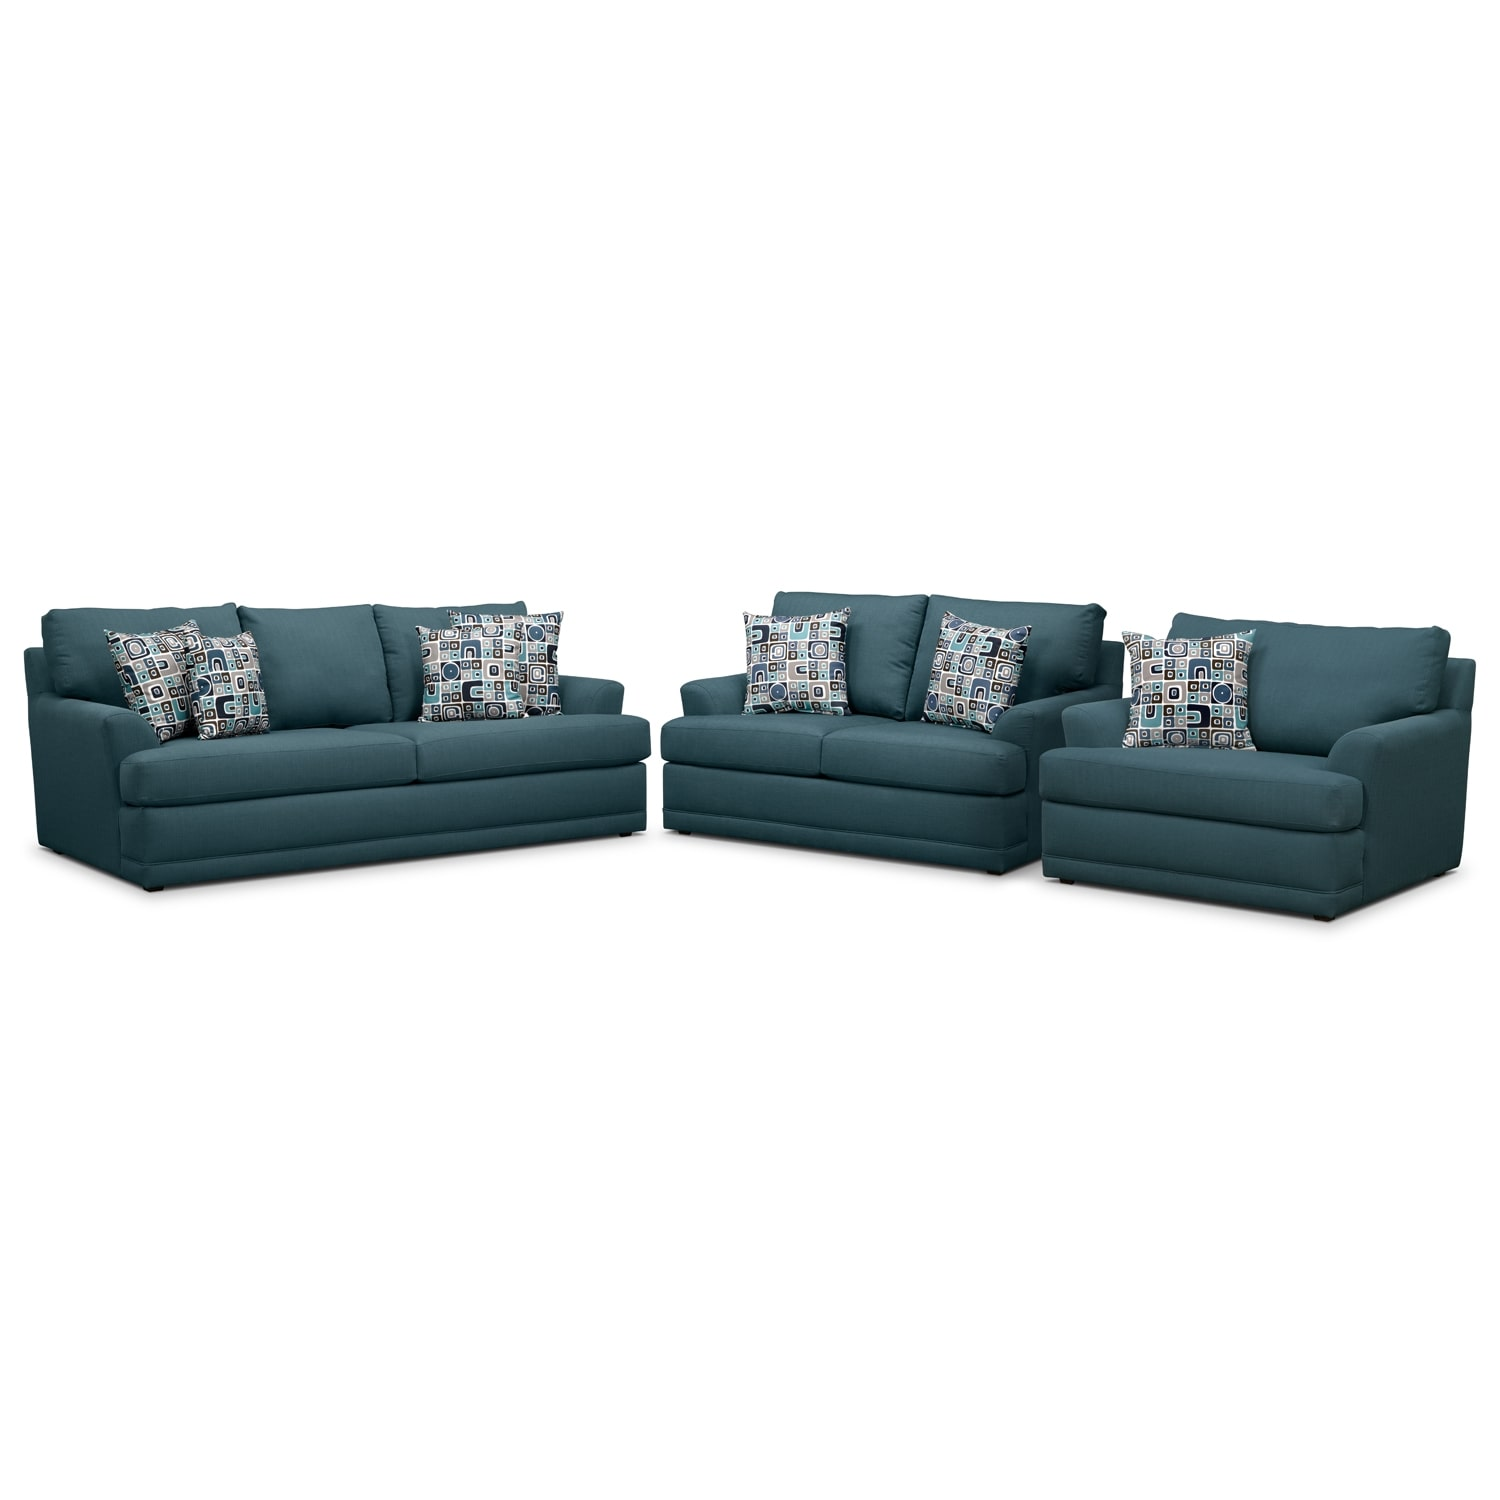 Living Room Furniture - Kismet 3 Pc. Sleeper Living Room with Chair and a Half and Memory Foam Mattress - Teal